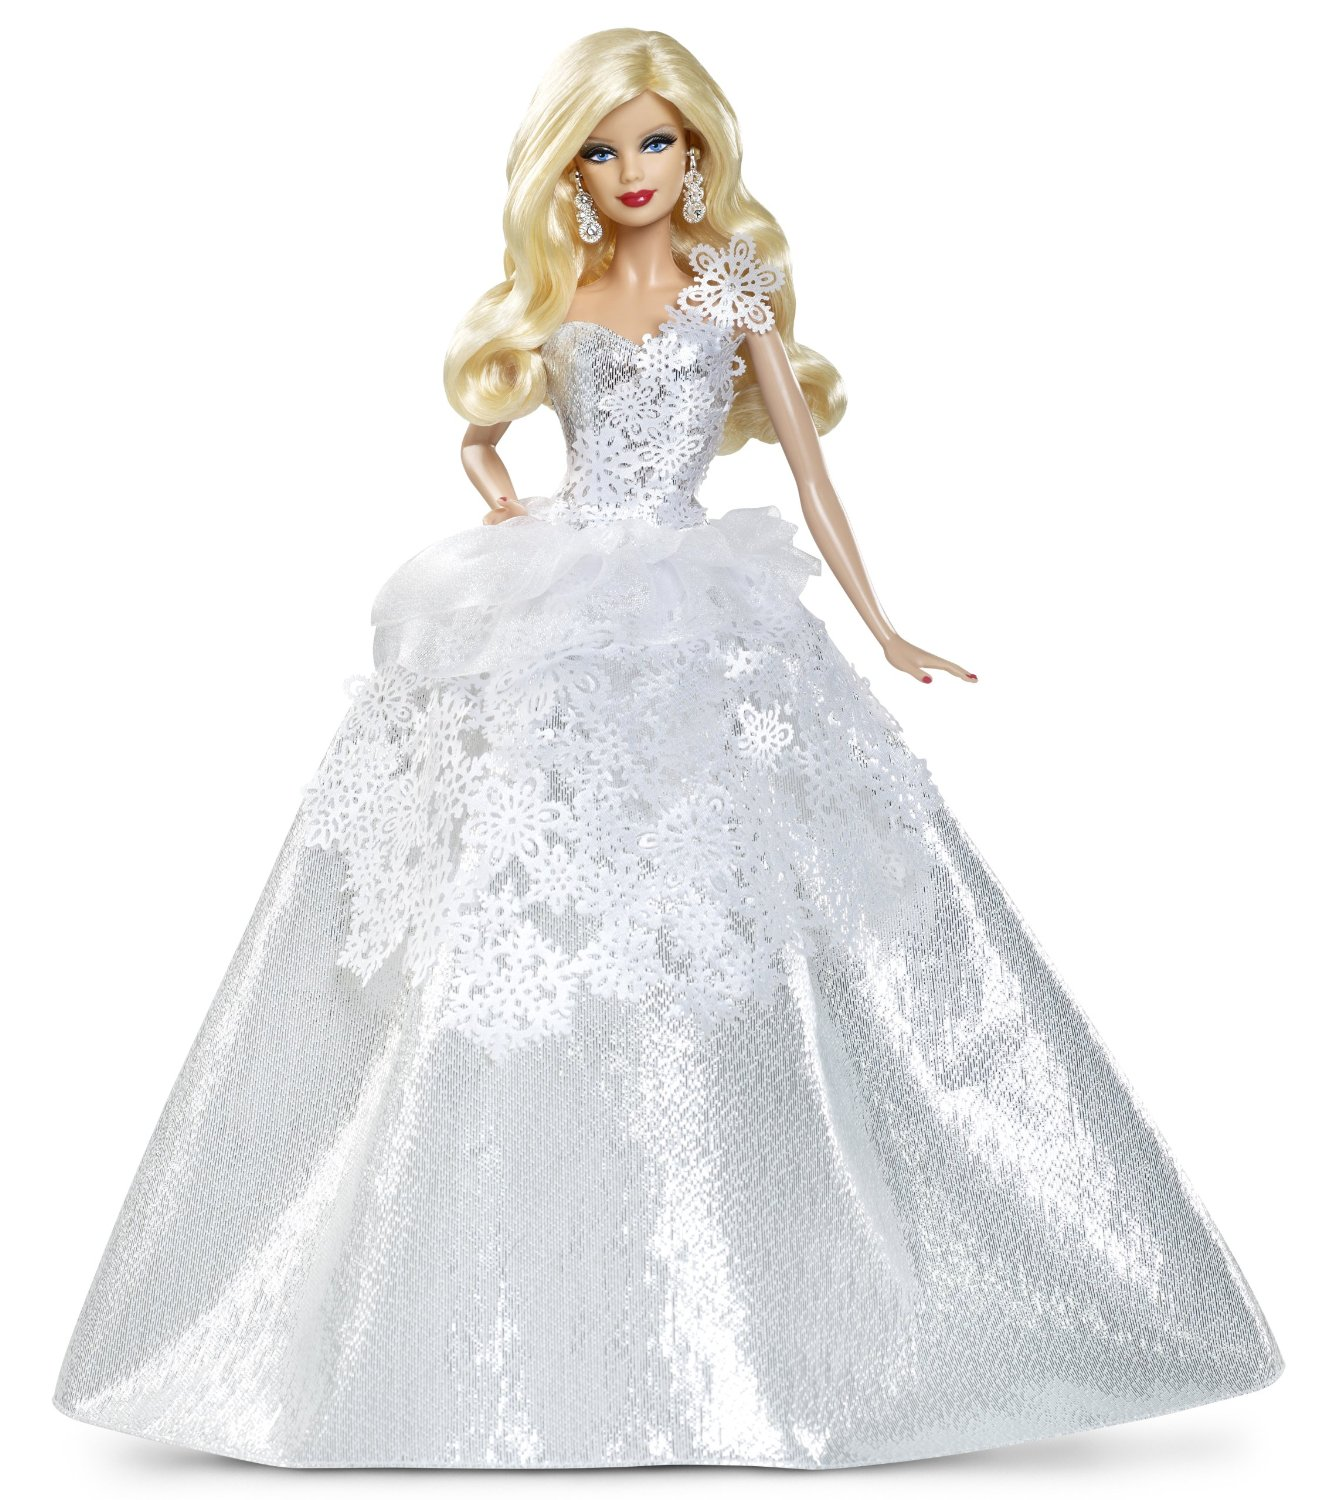 Beautiful Wallpapers Barbie Doll HD Wallpapers 1332x1500